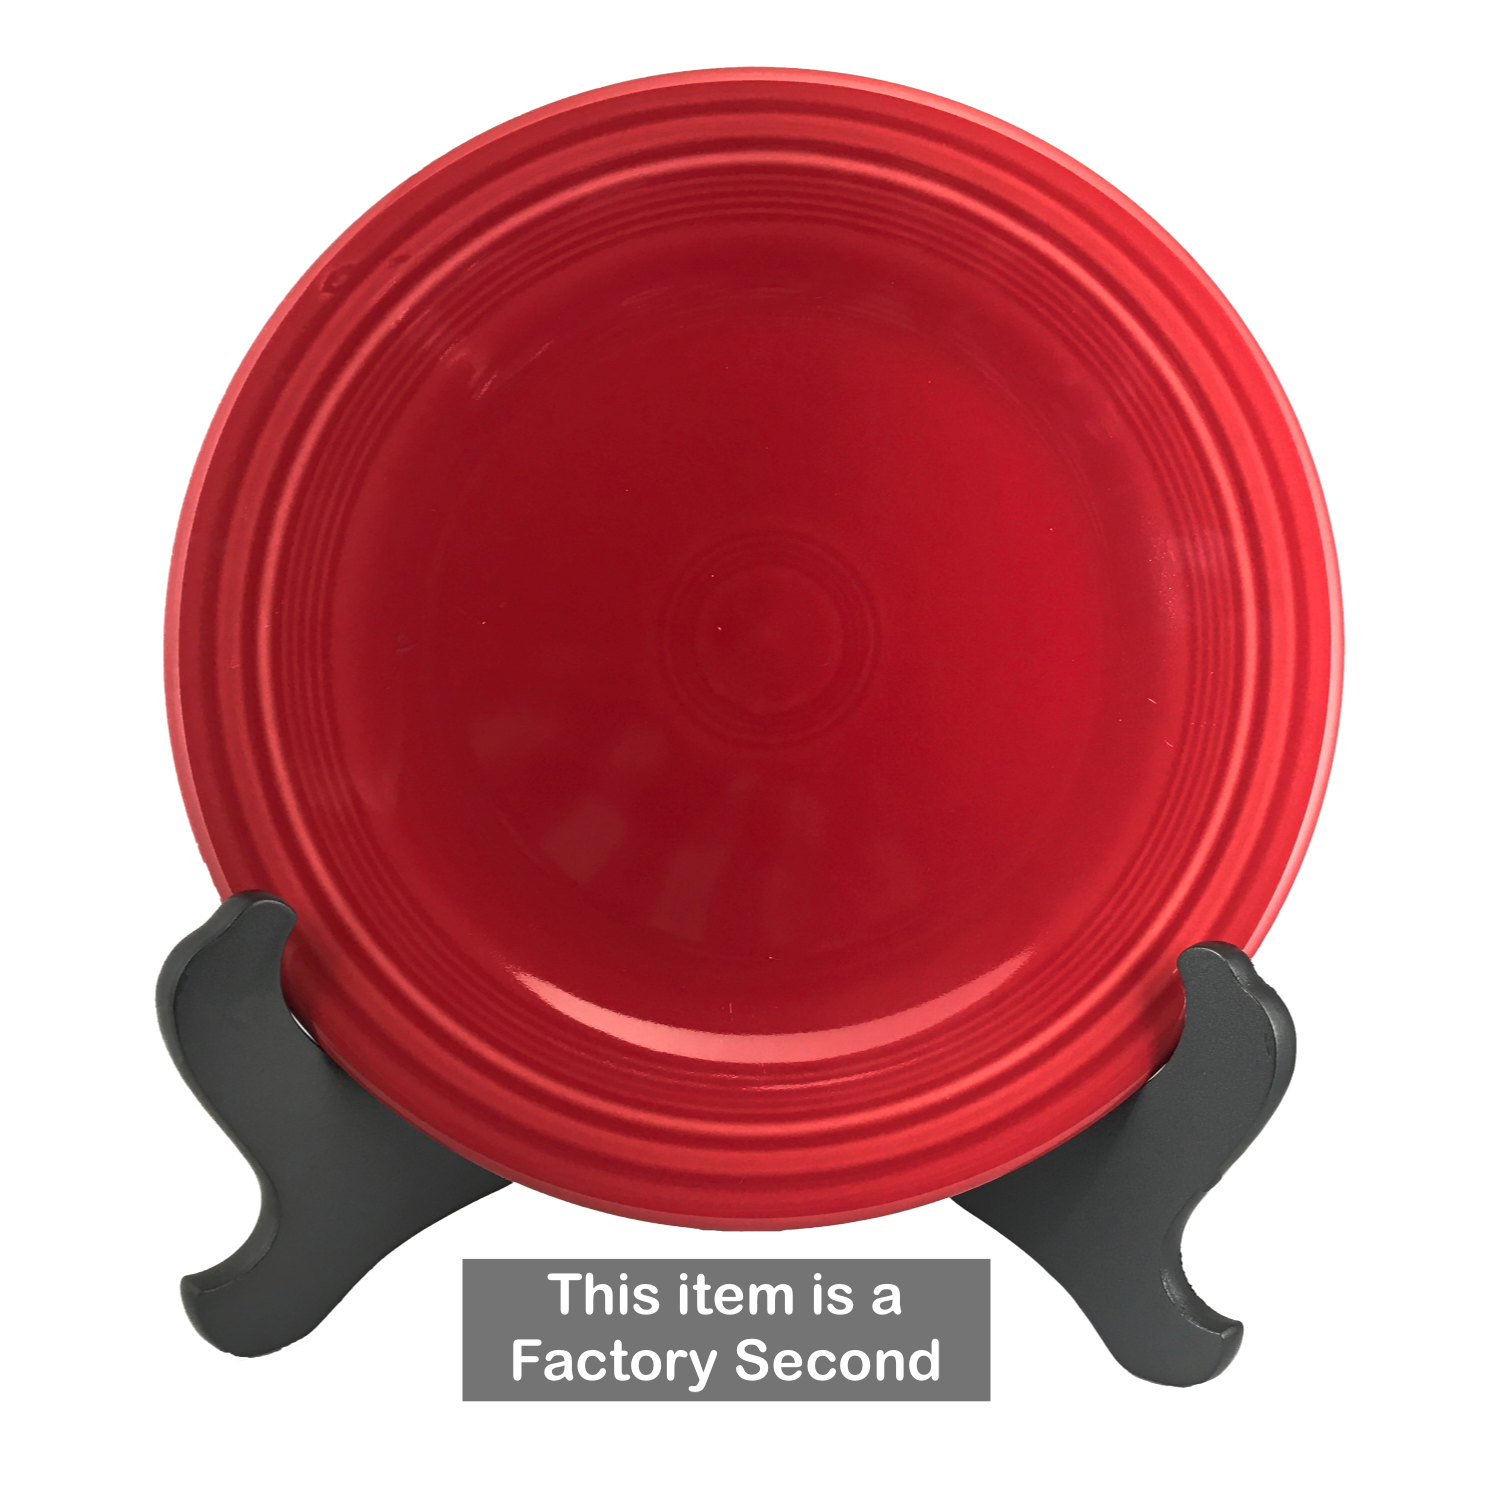 Plates - Factory Seconds